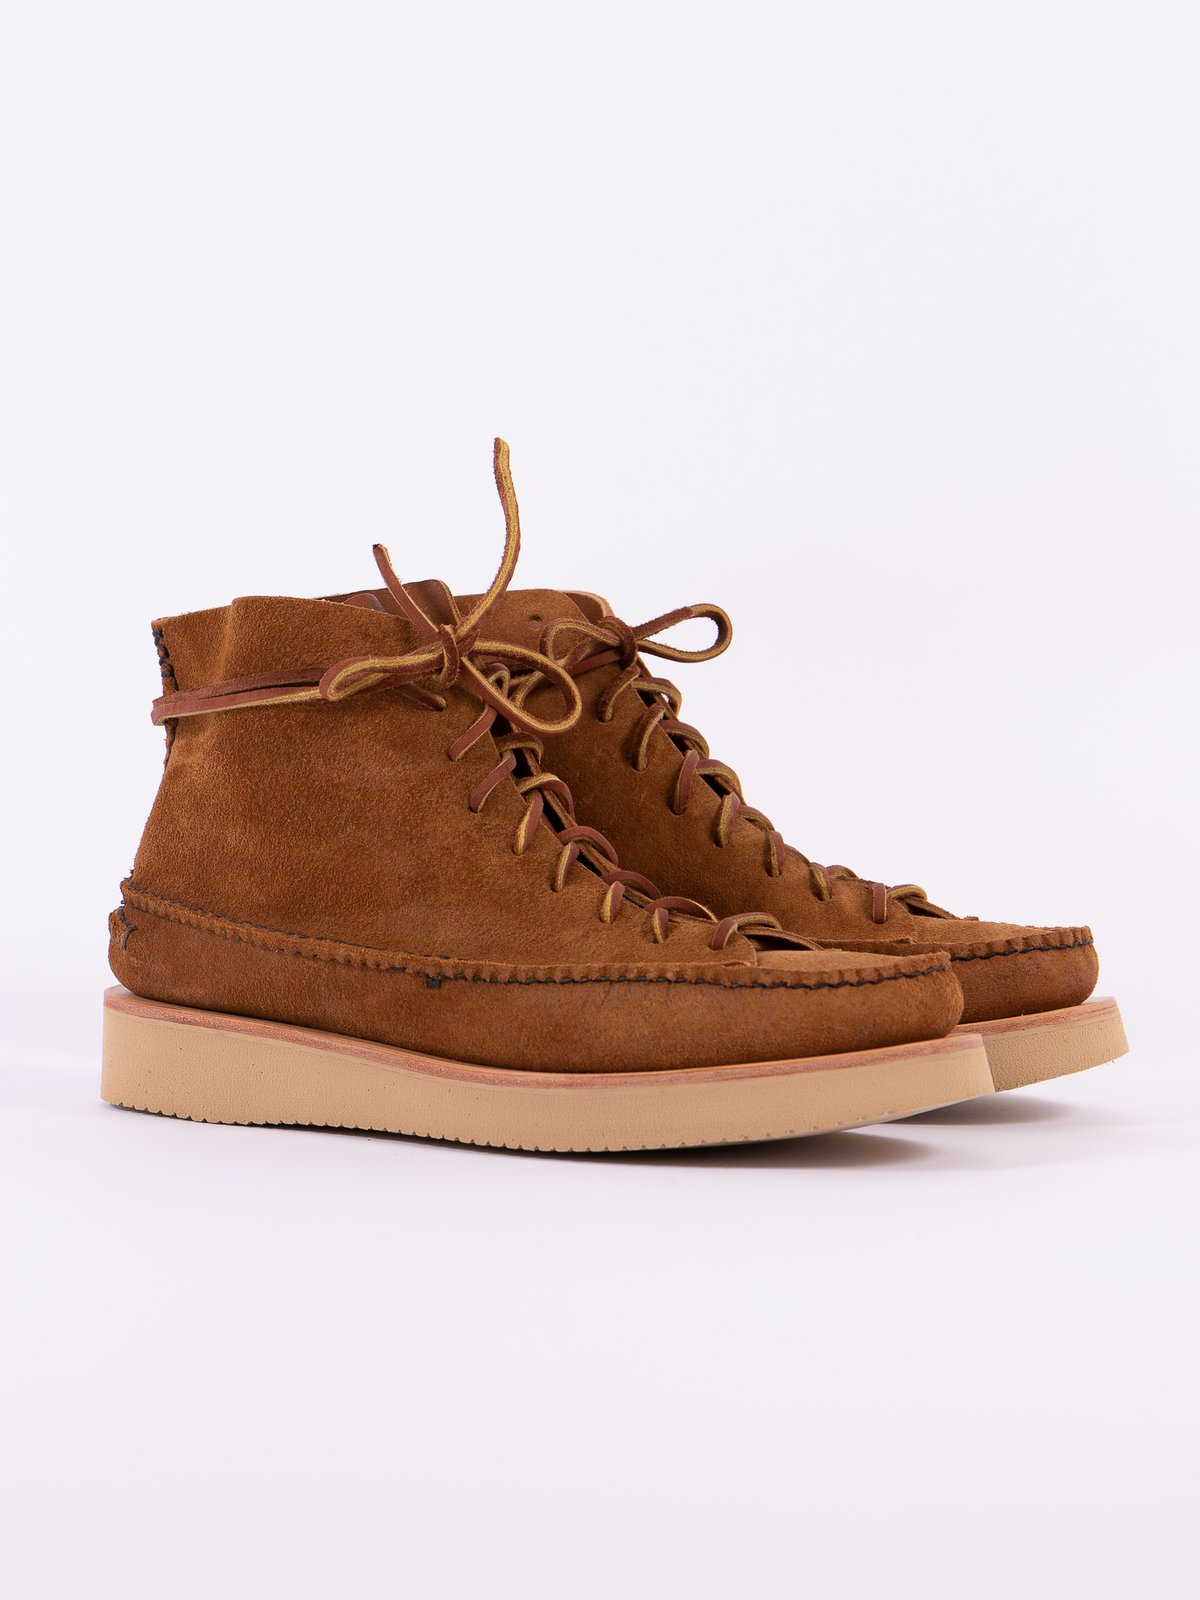 Golden Brown All Handsewn Sneaker Moc High Boot - Image 1